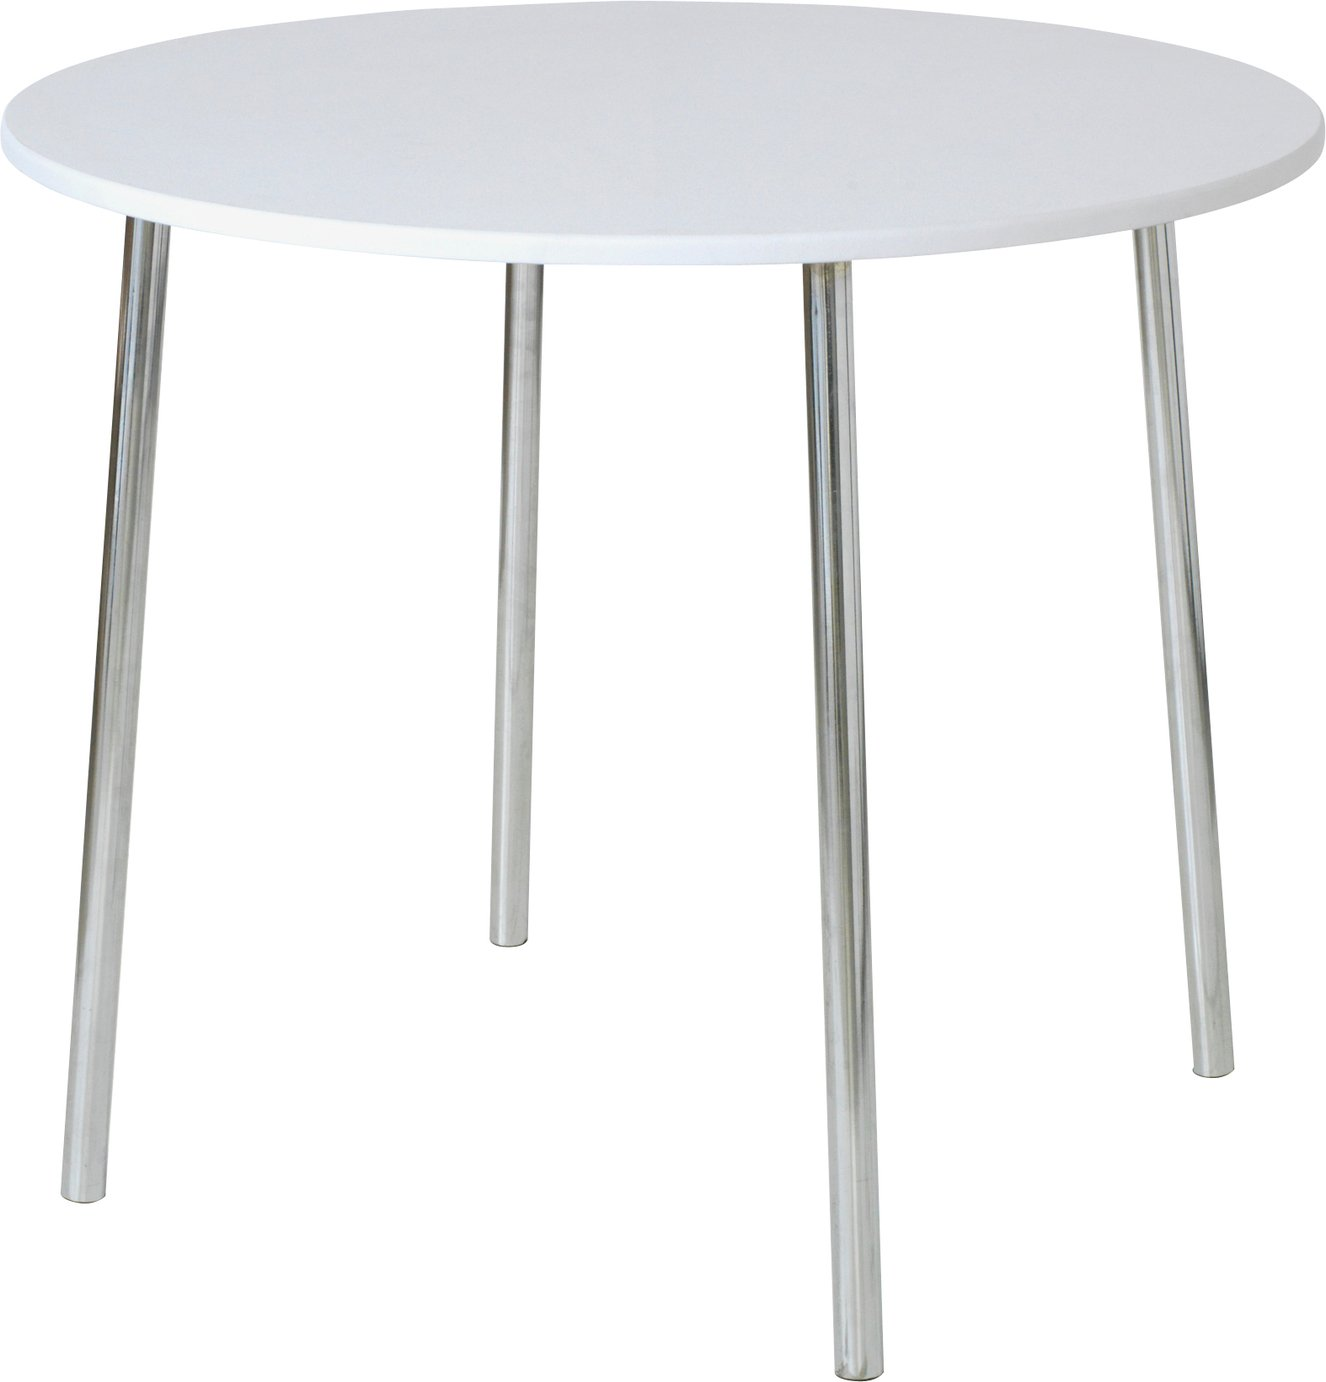 White Round Dining Table. Fine Dining Argos Home Round Wood Effect 2 Seater  Dining Table